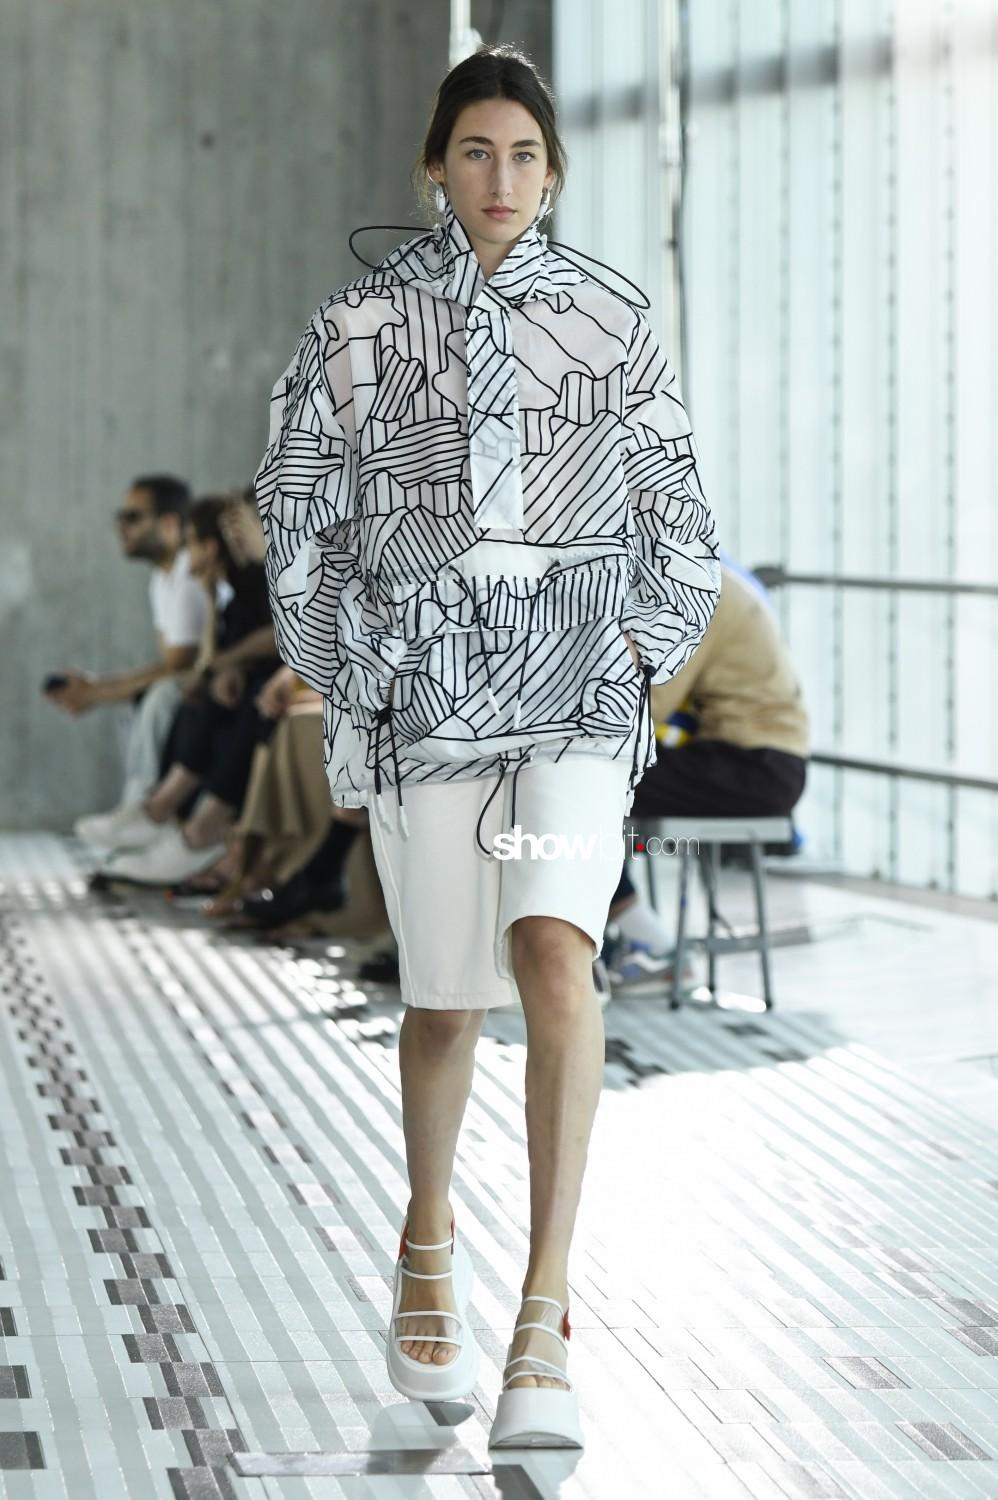 Sunnei Woman Man Spring Summer 2019 Milan